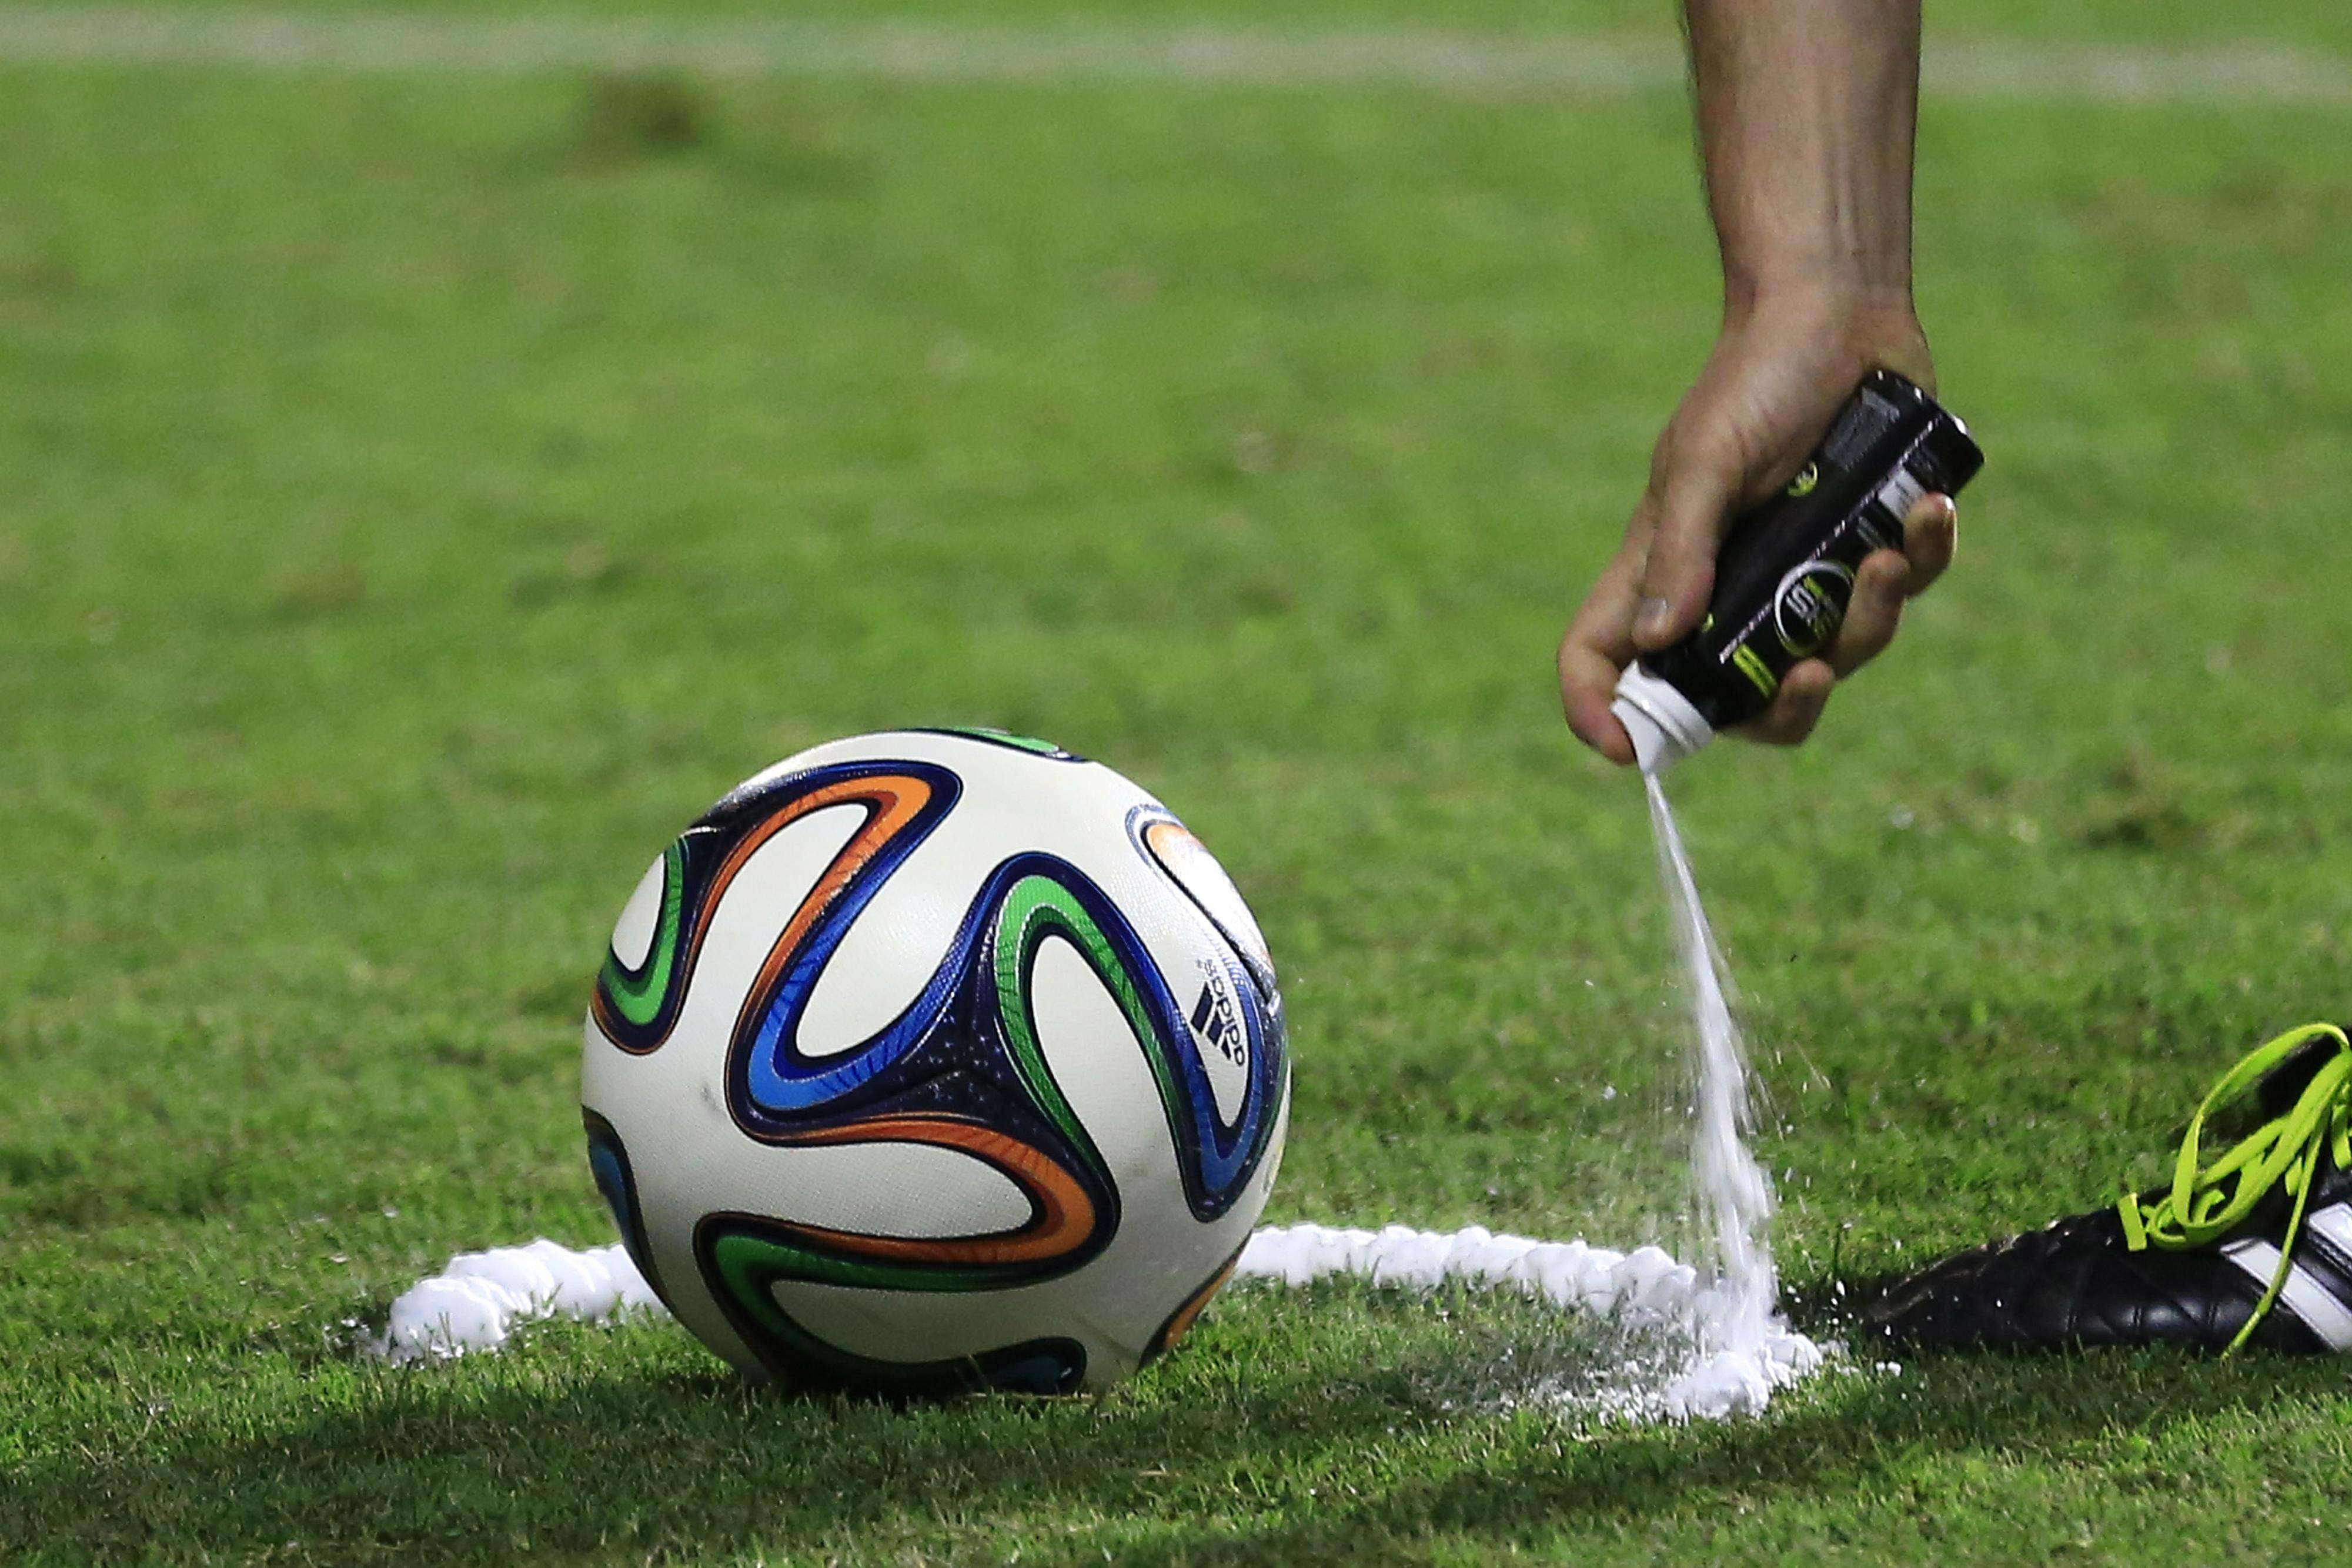 Premier League to use vanishing spray in matches